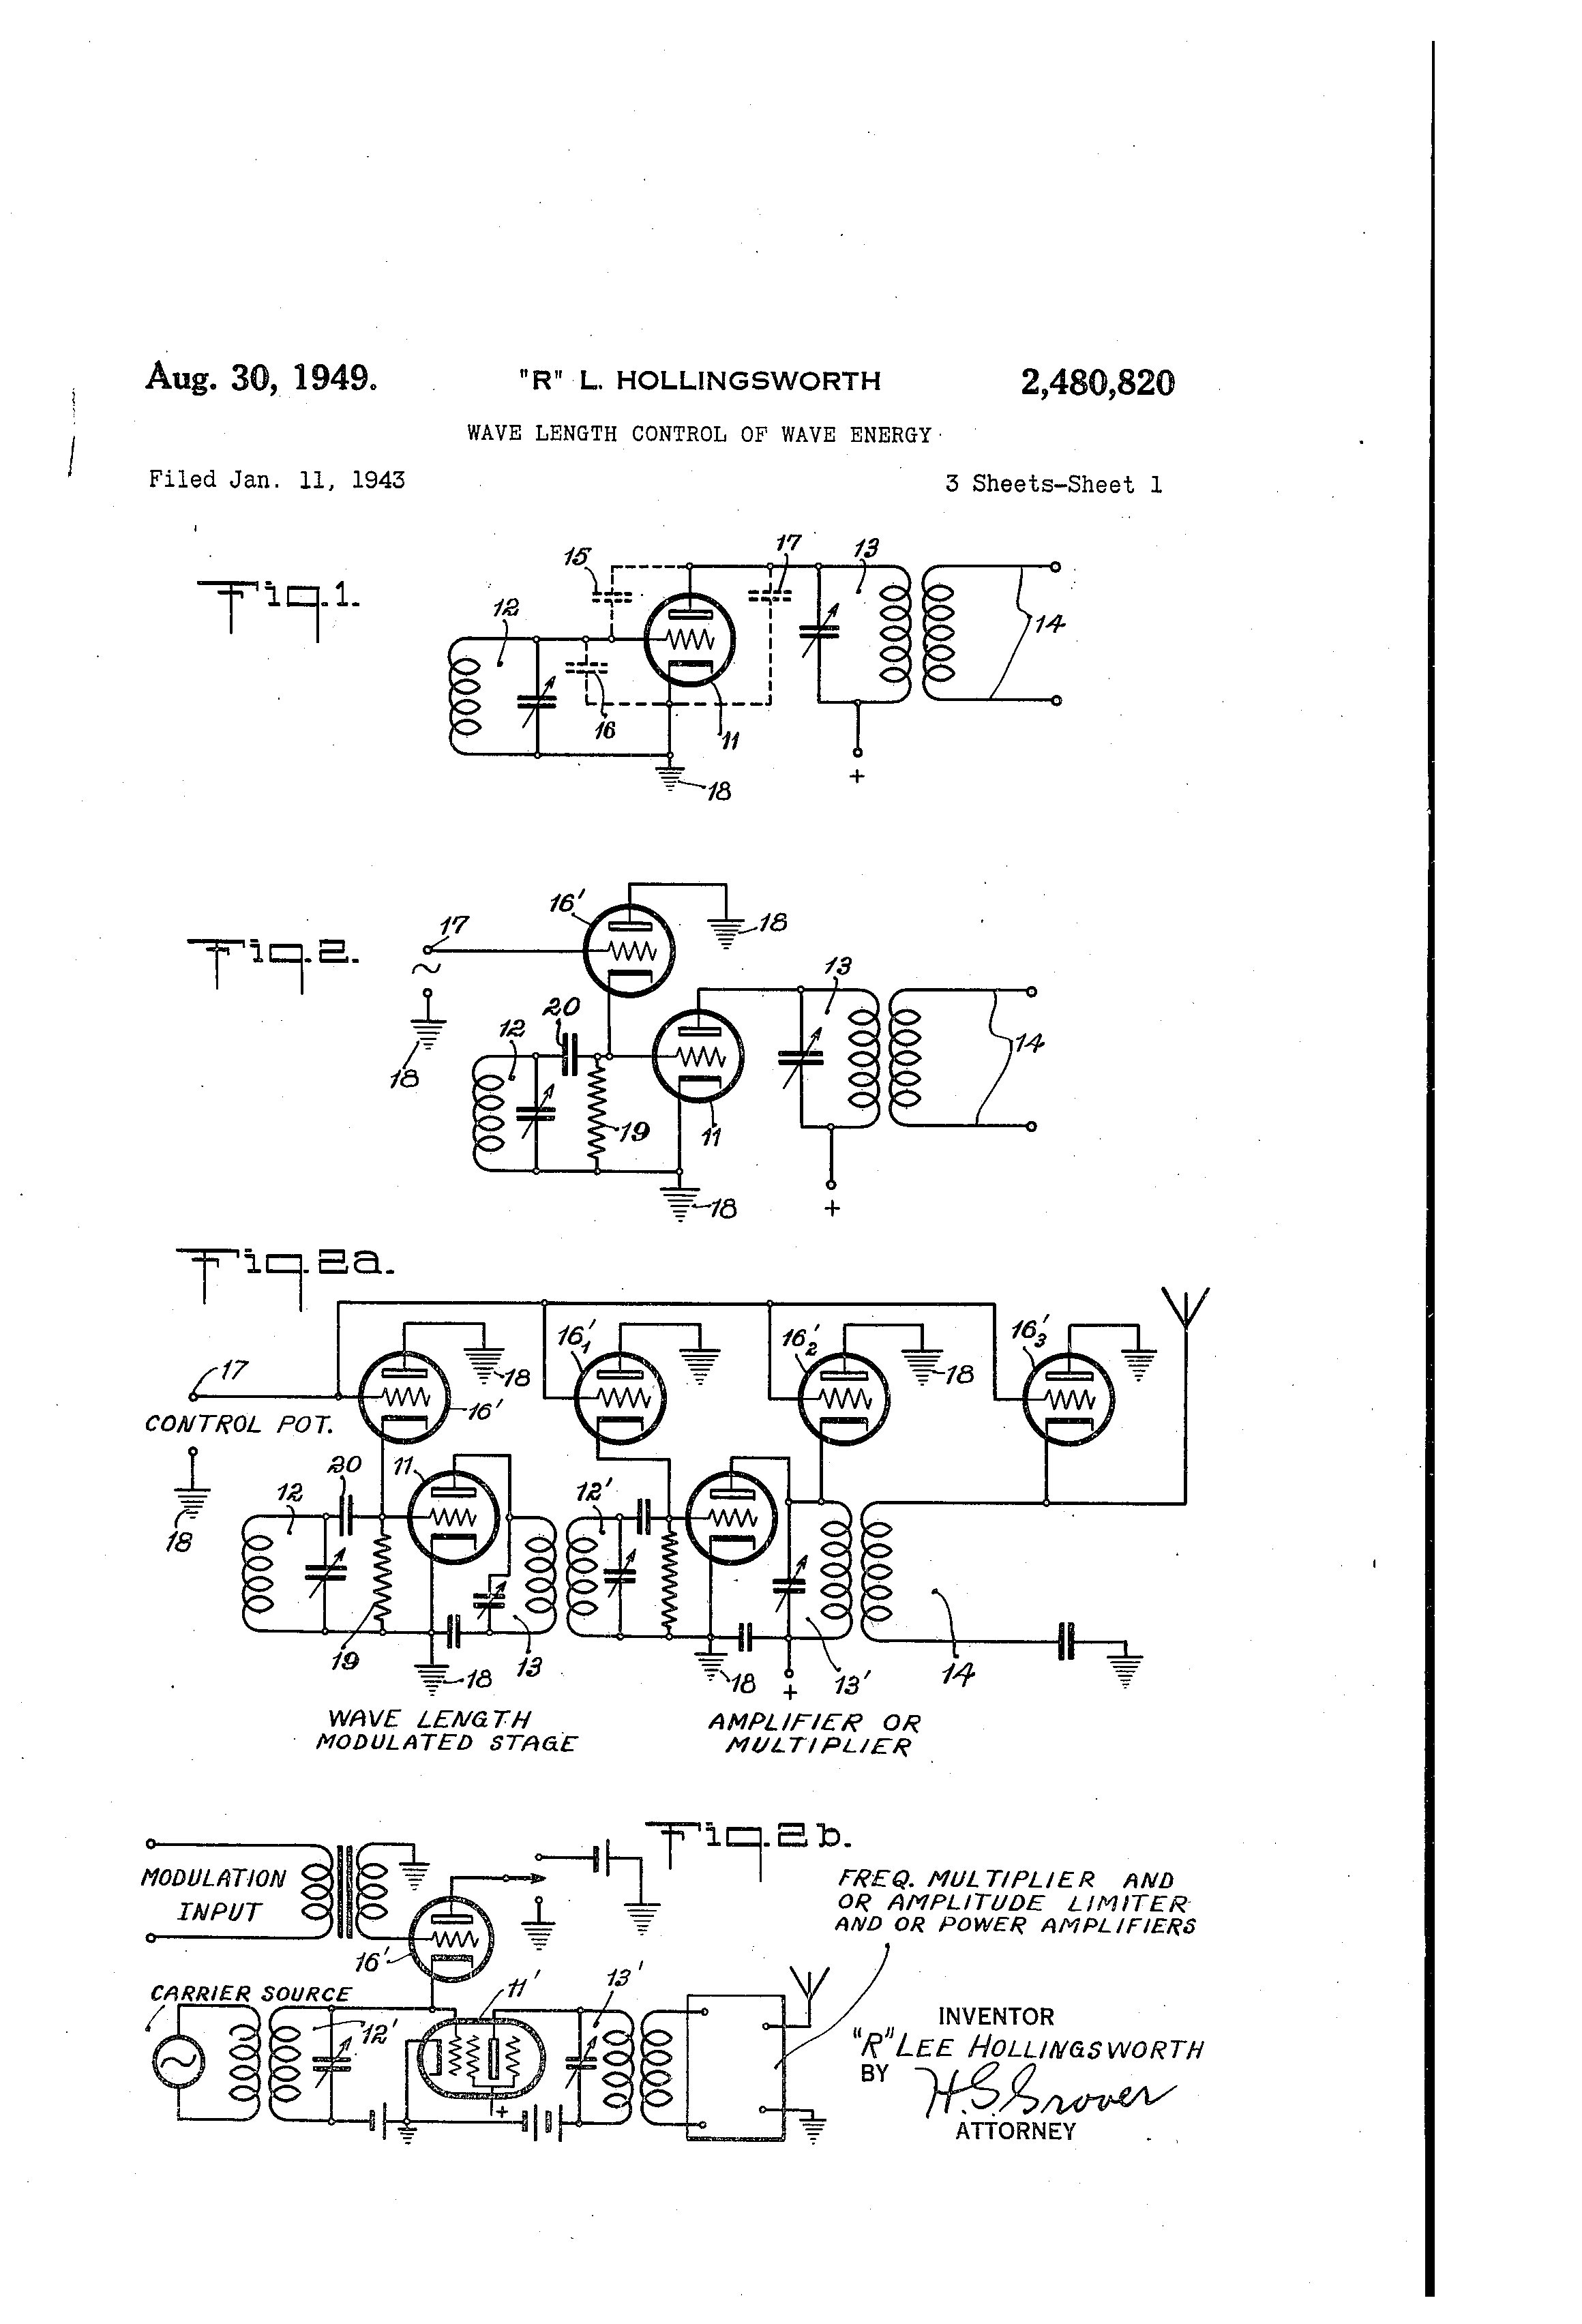 patent us2480820 wave length control of wave energy patents Energy Modulation Circuit Amazon patent drawing